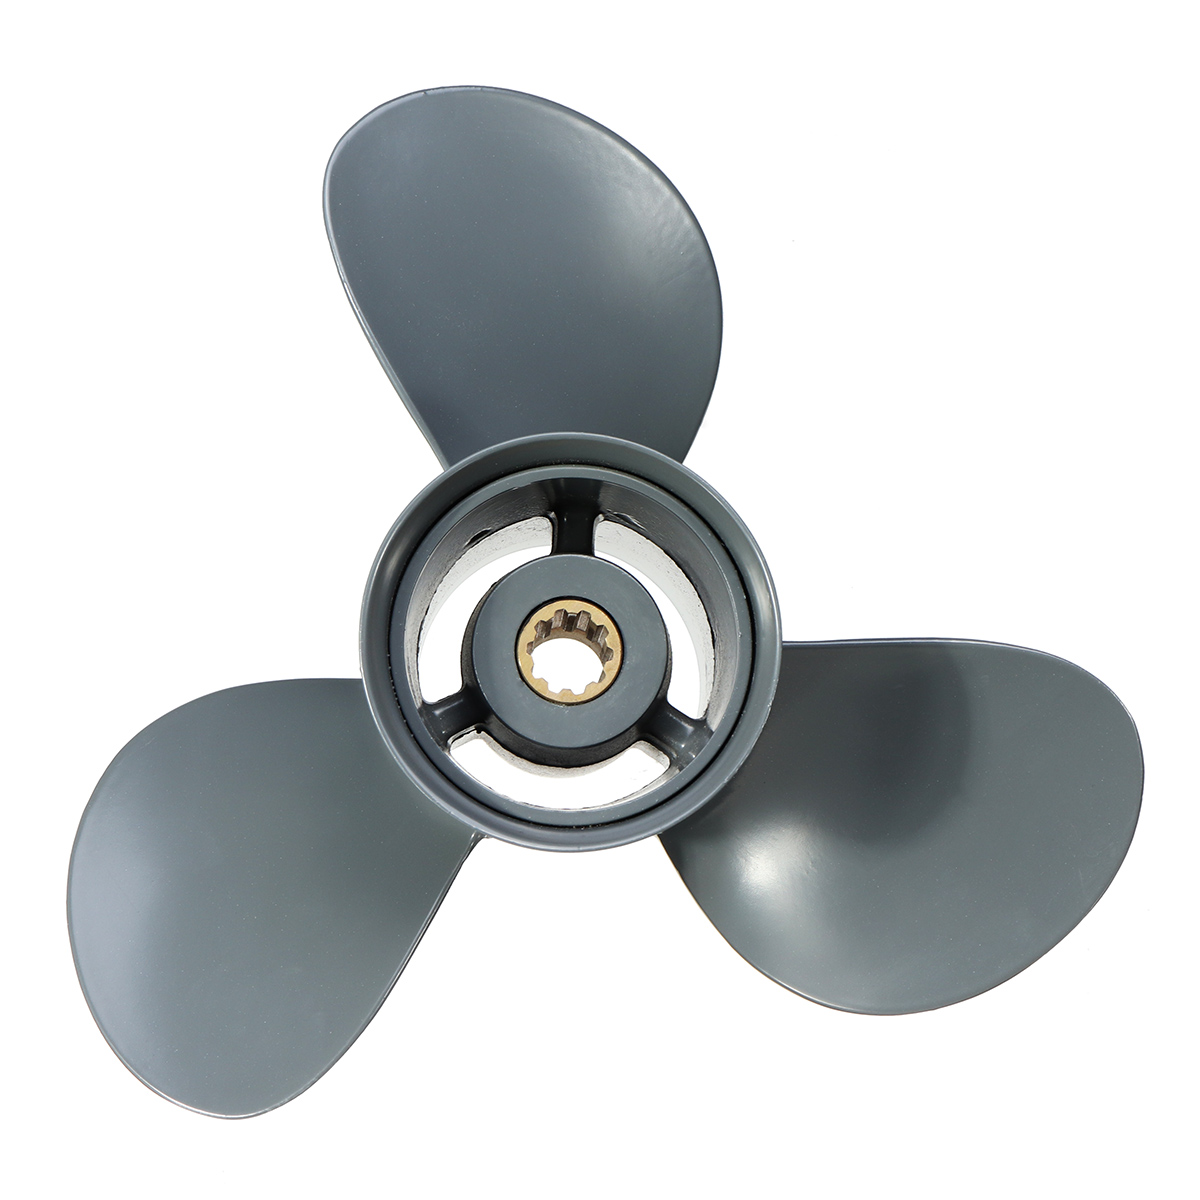 Outboard Propeller For Honda 25 30HP 58130 ZV7 012AH BF25/1994 BF30/1995 Newer 9 7/8 x 12 251mm Aluminum Alloy Boat 3 Blades